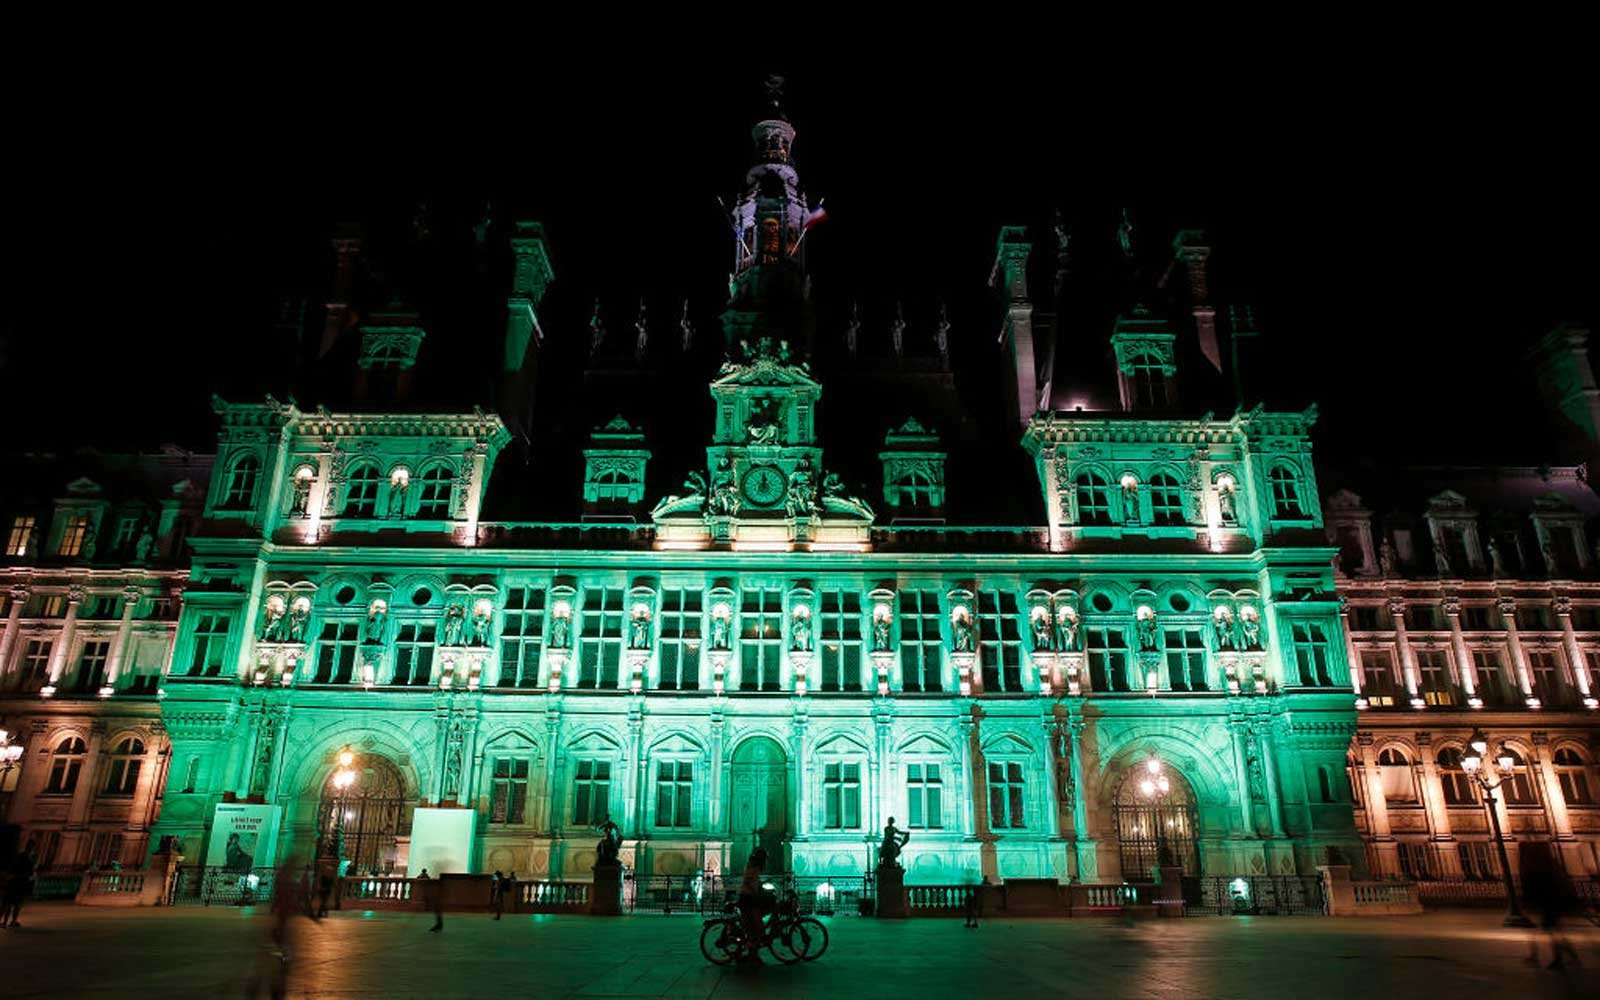 PARIS, FRANCE - JUNE 01:  The Paris city Hall is illuminated in green following the announcement by US President Donald Trump that the United States will withdraw from the 2015 Paris accord on June 01, 2017 in Paris, France.  U.S. President Donald Trump a